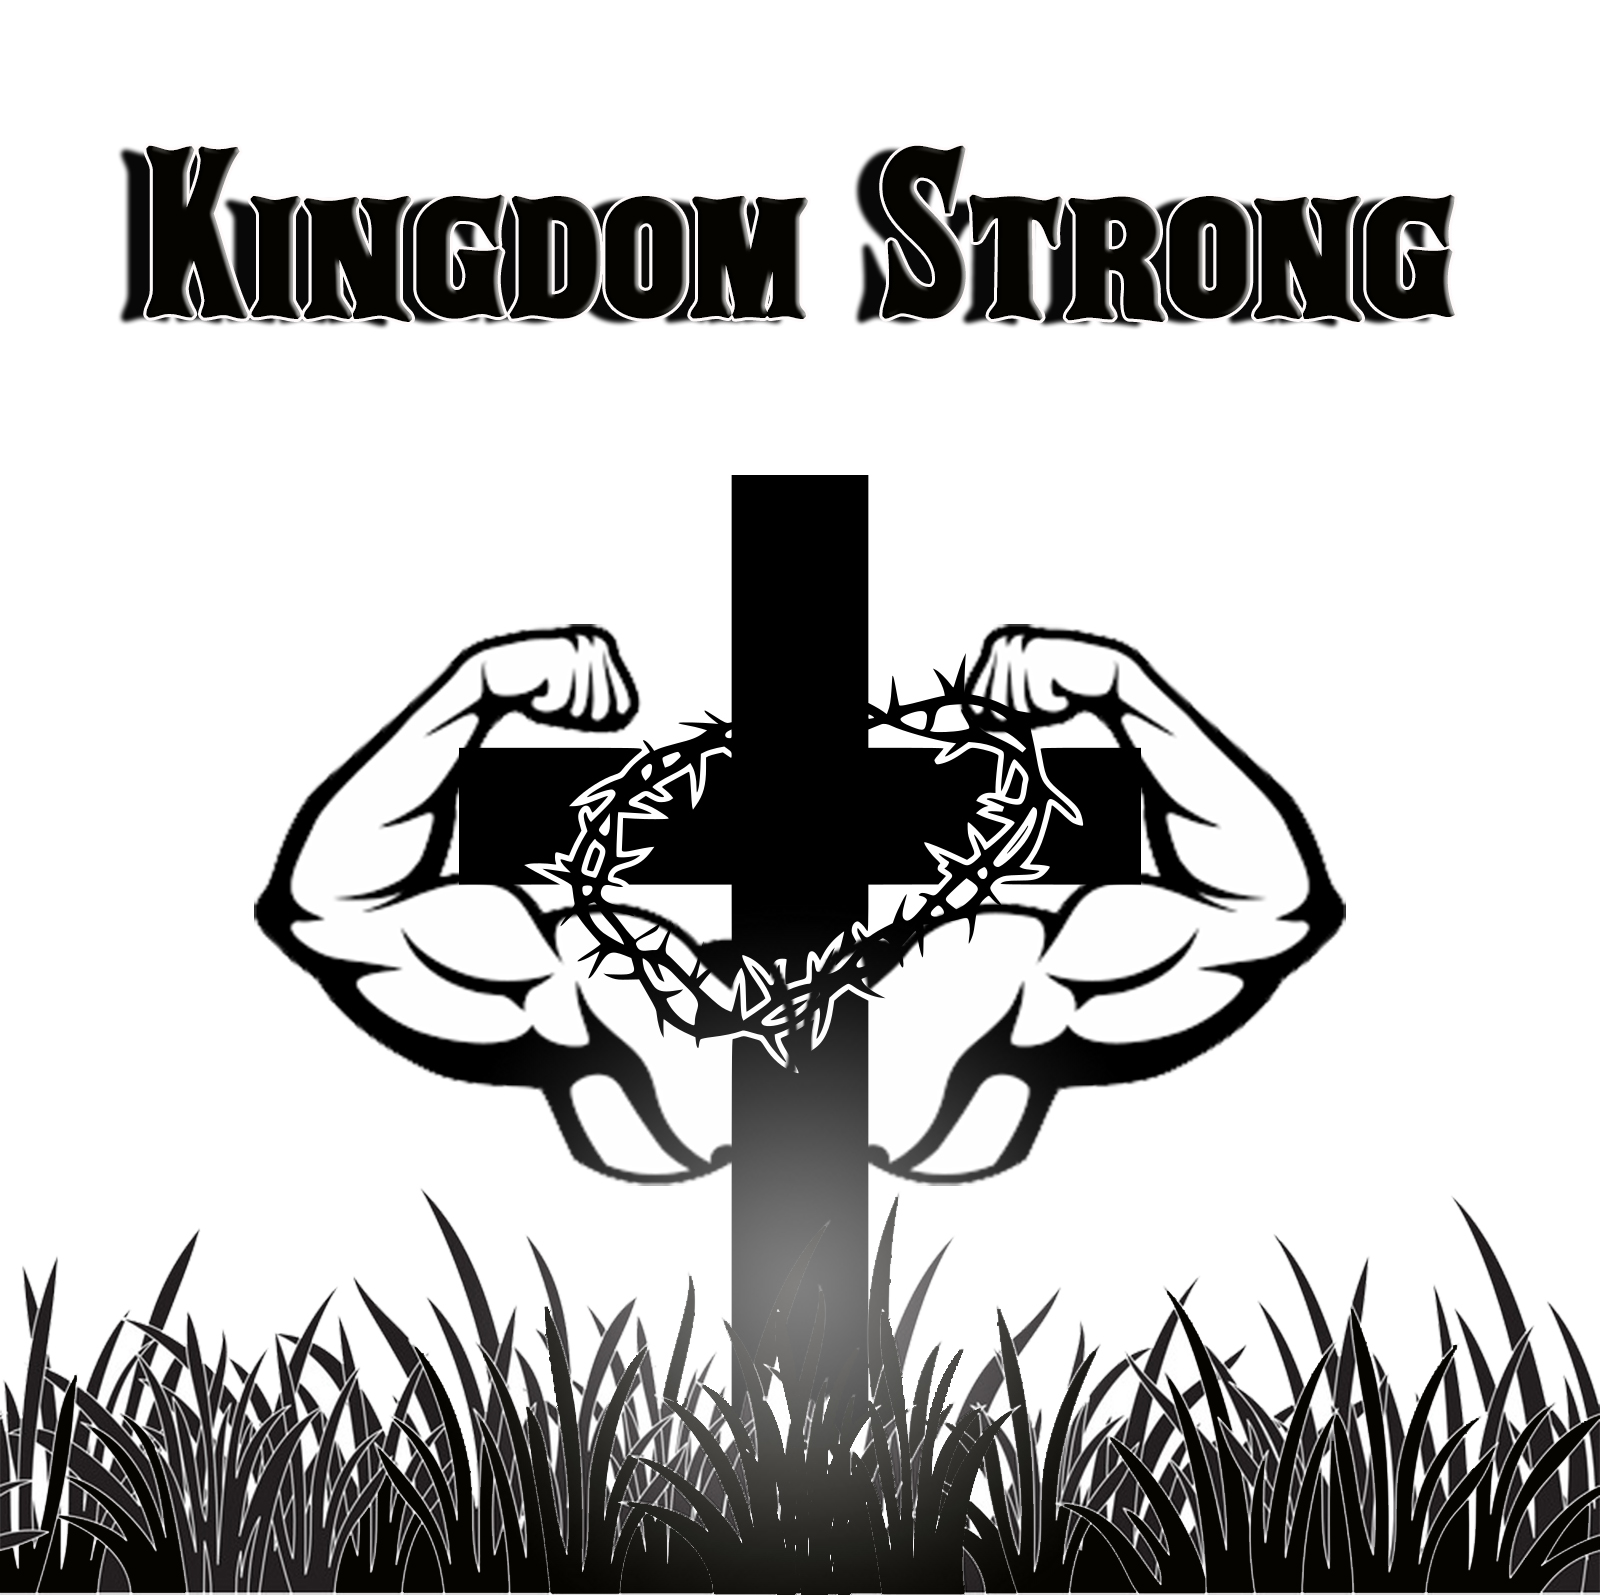 Kingdom Strong